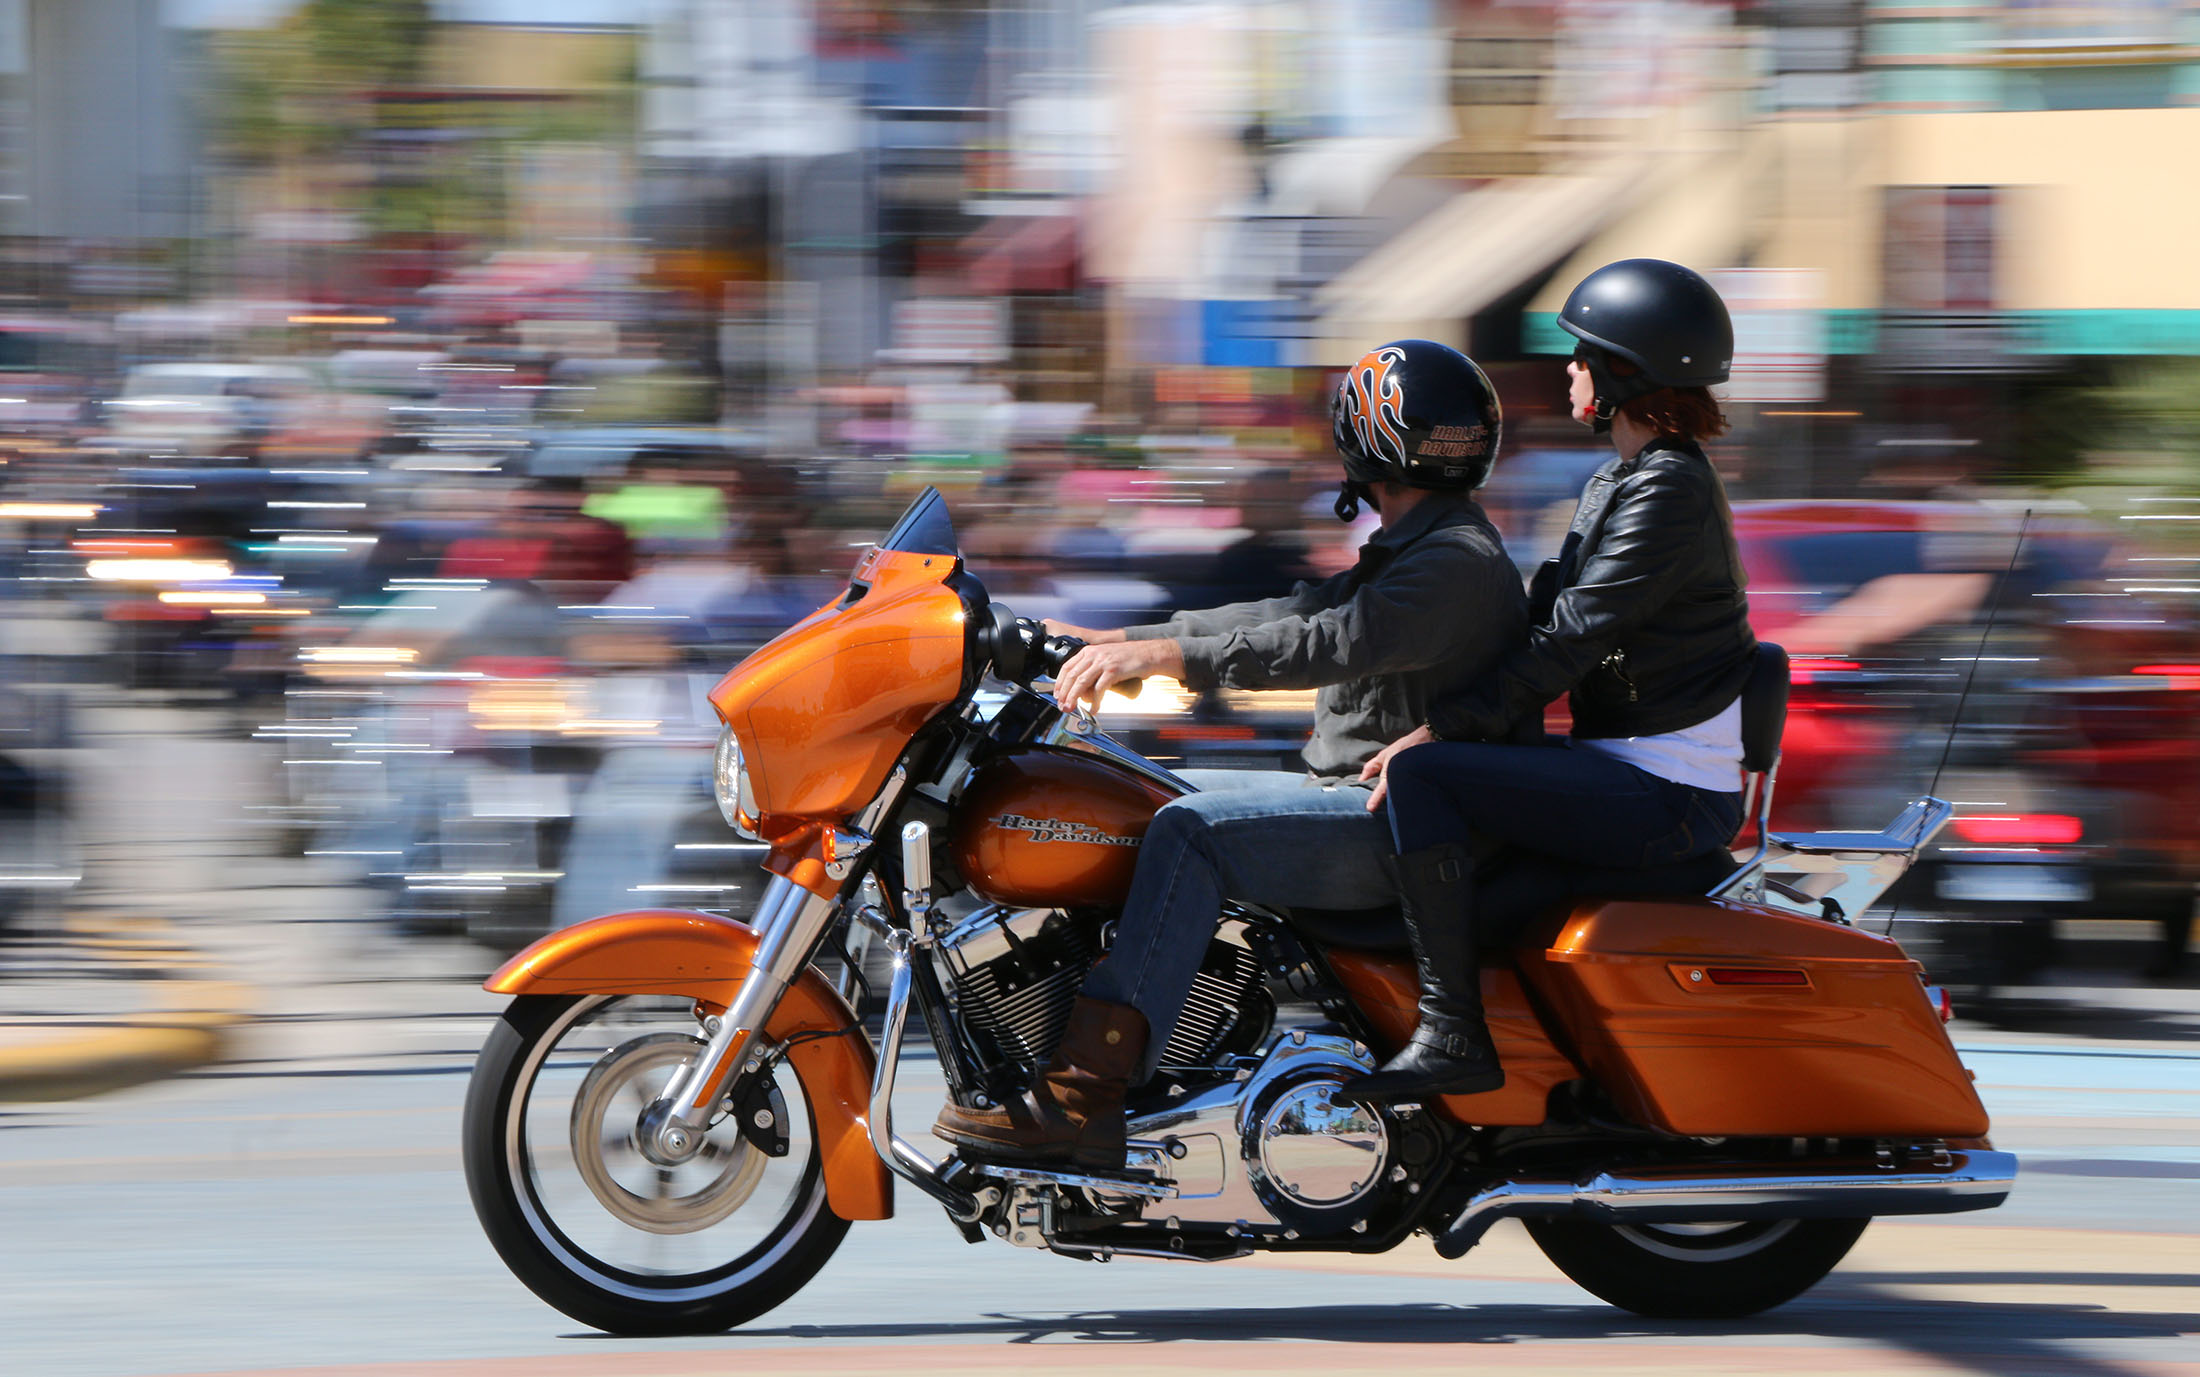 News-Journal/JIM TILLER A pair of bikers steak through the intersection of Main Street and A1A in Daytona Beach during Bike Week Monday, March 9, 2015.